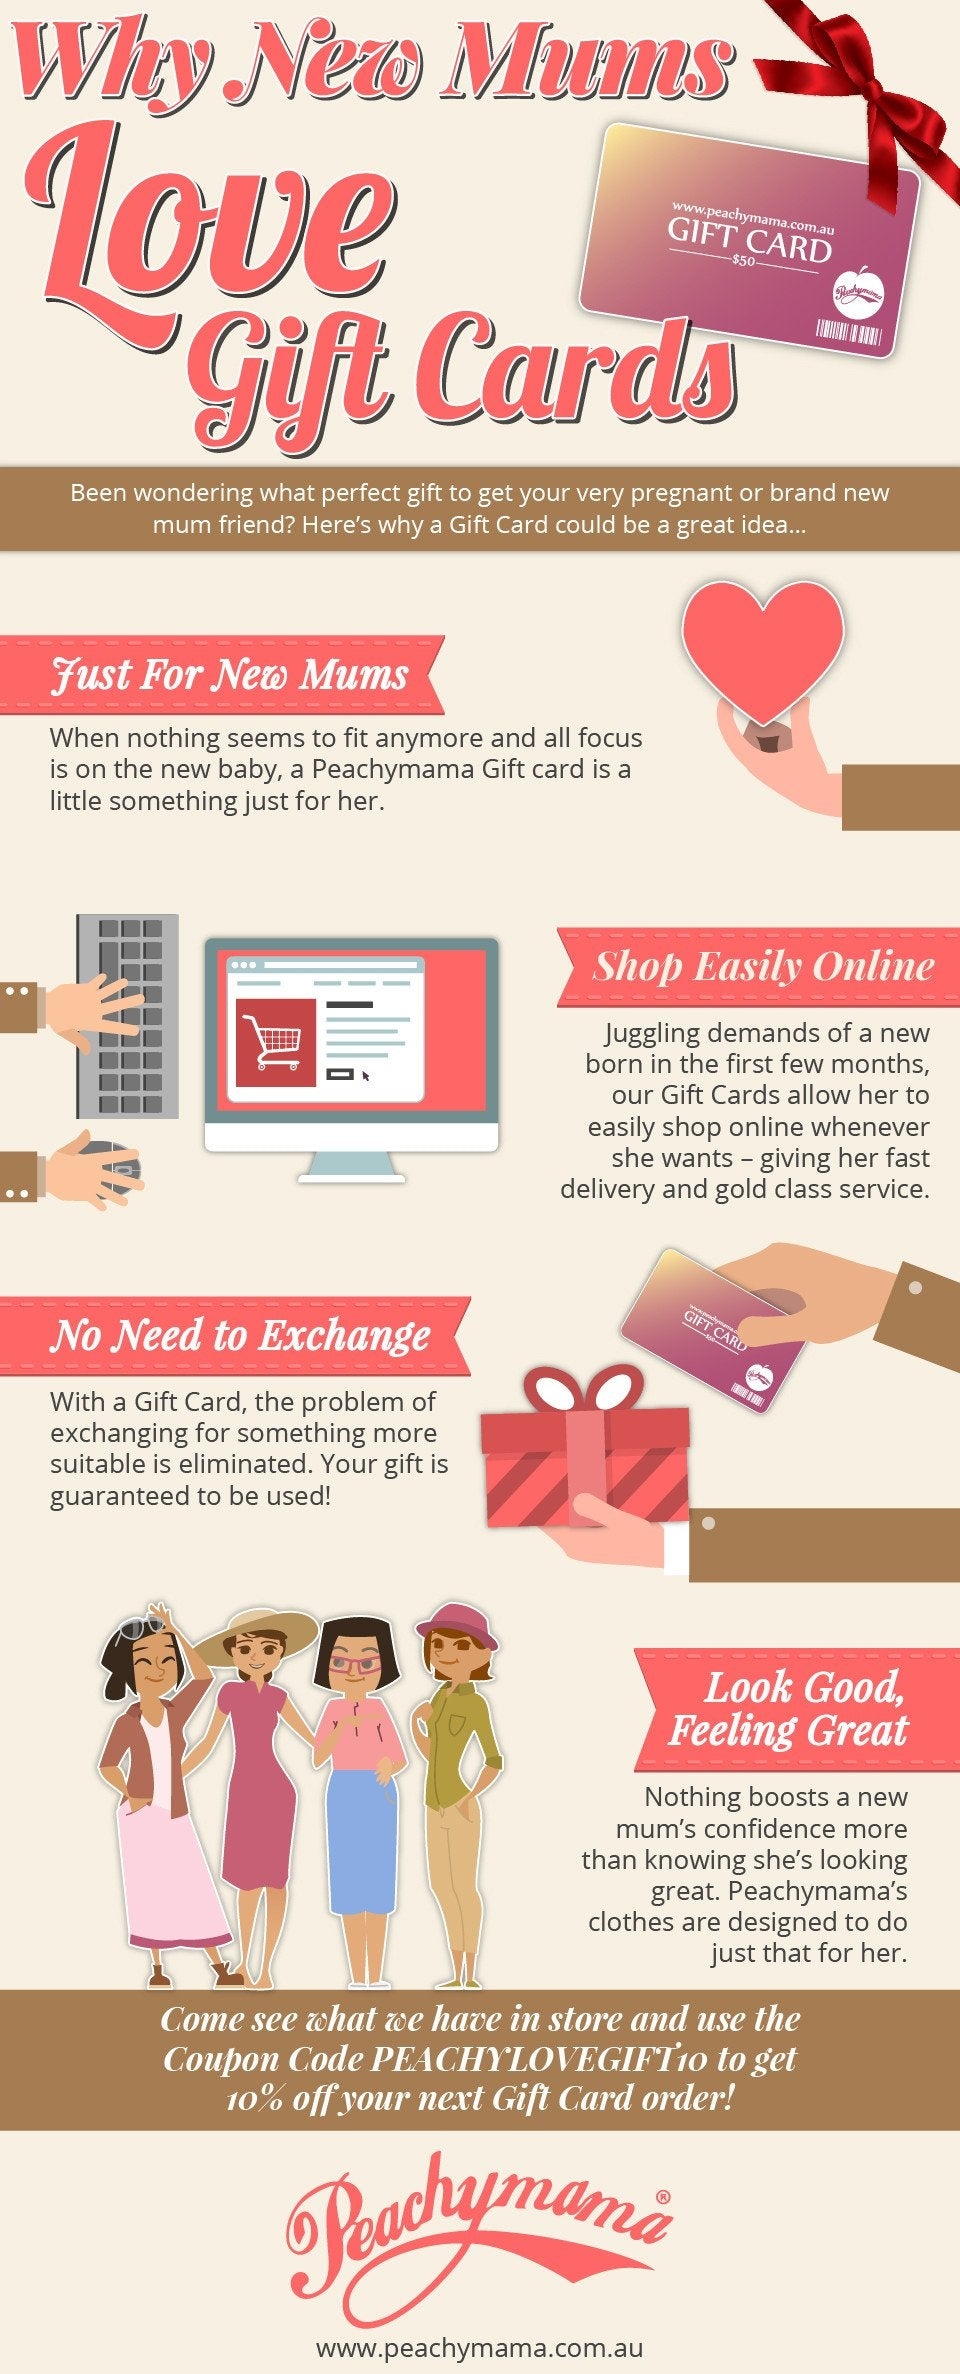 Why New Mums Love Gift Cards Infographic